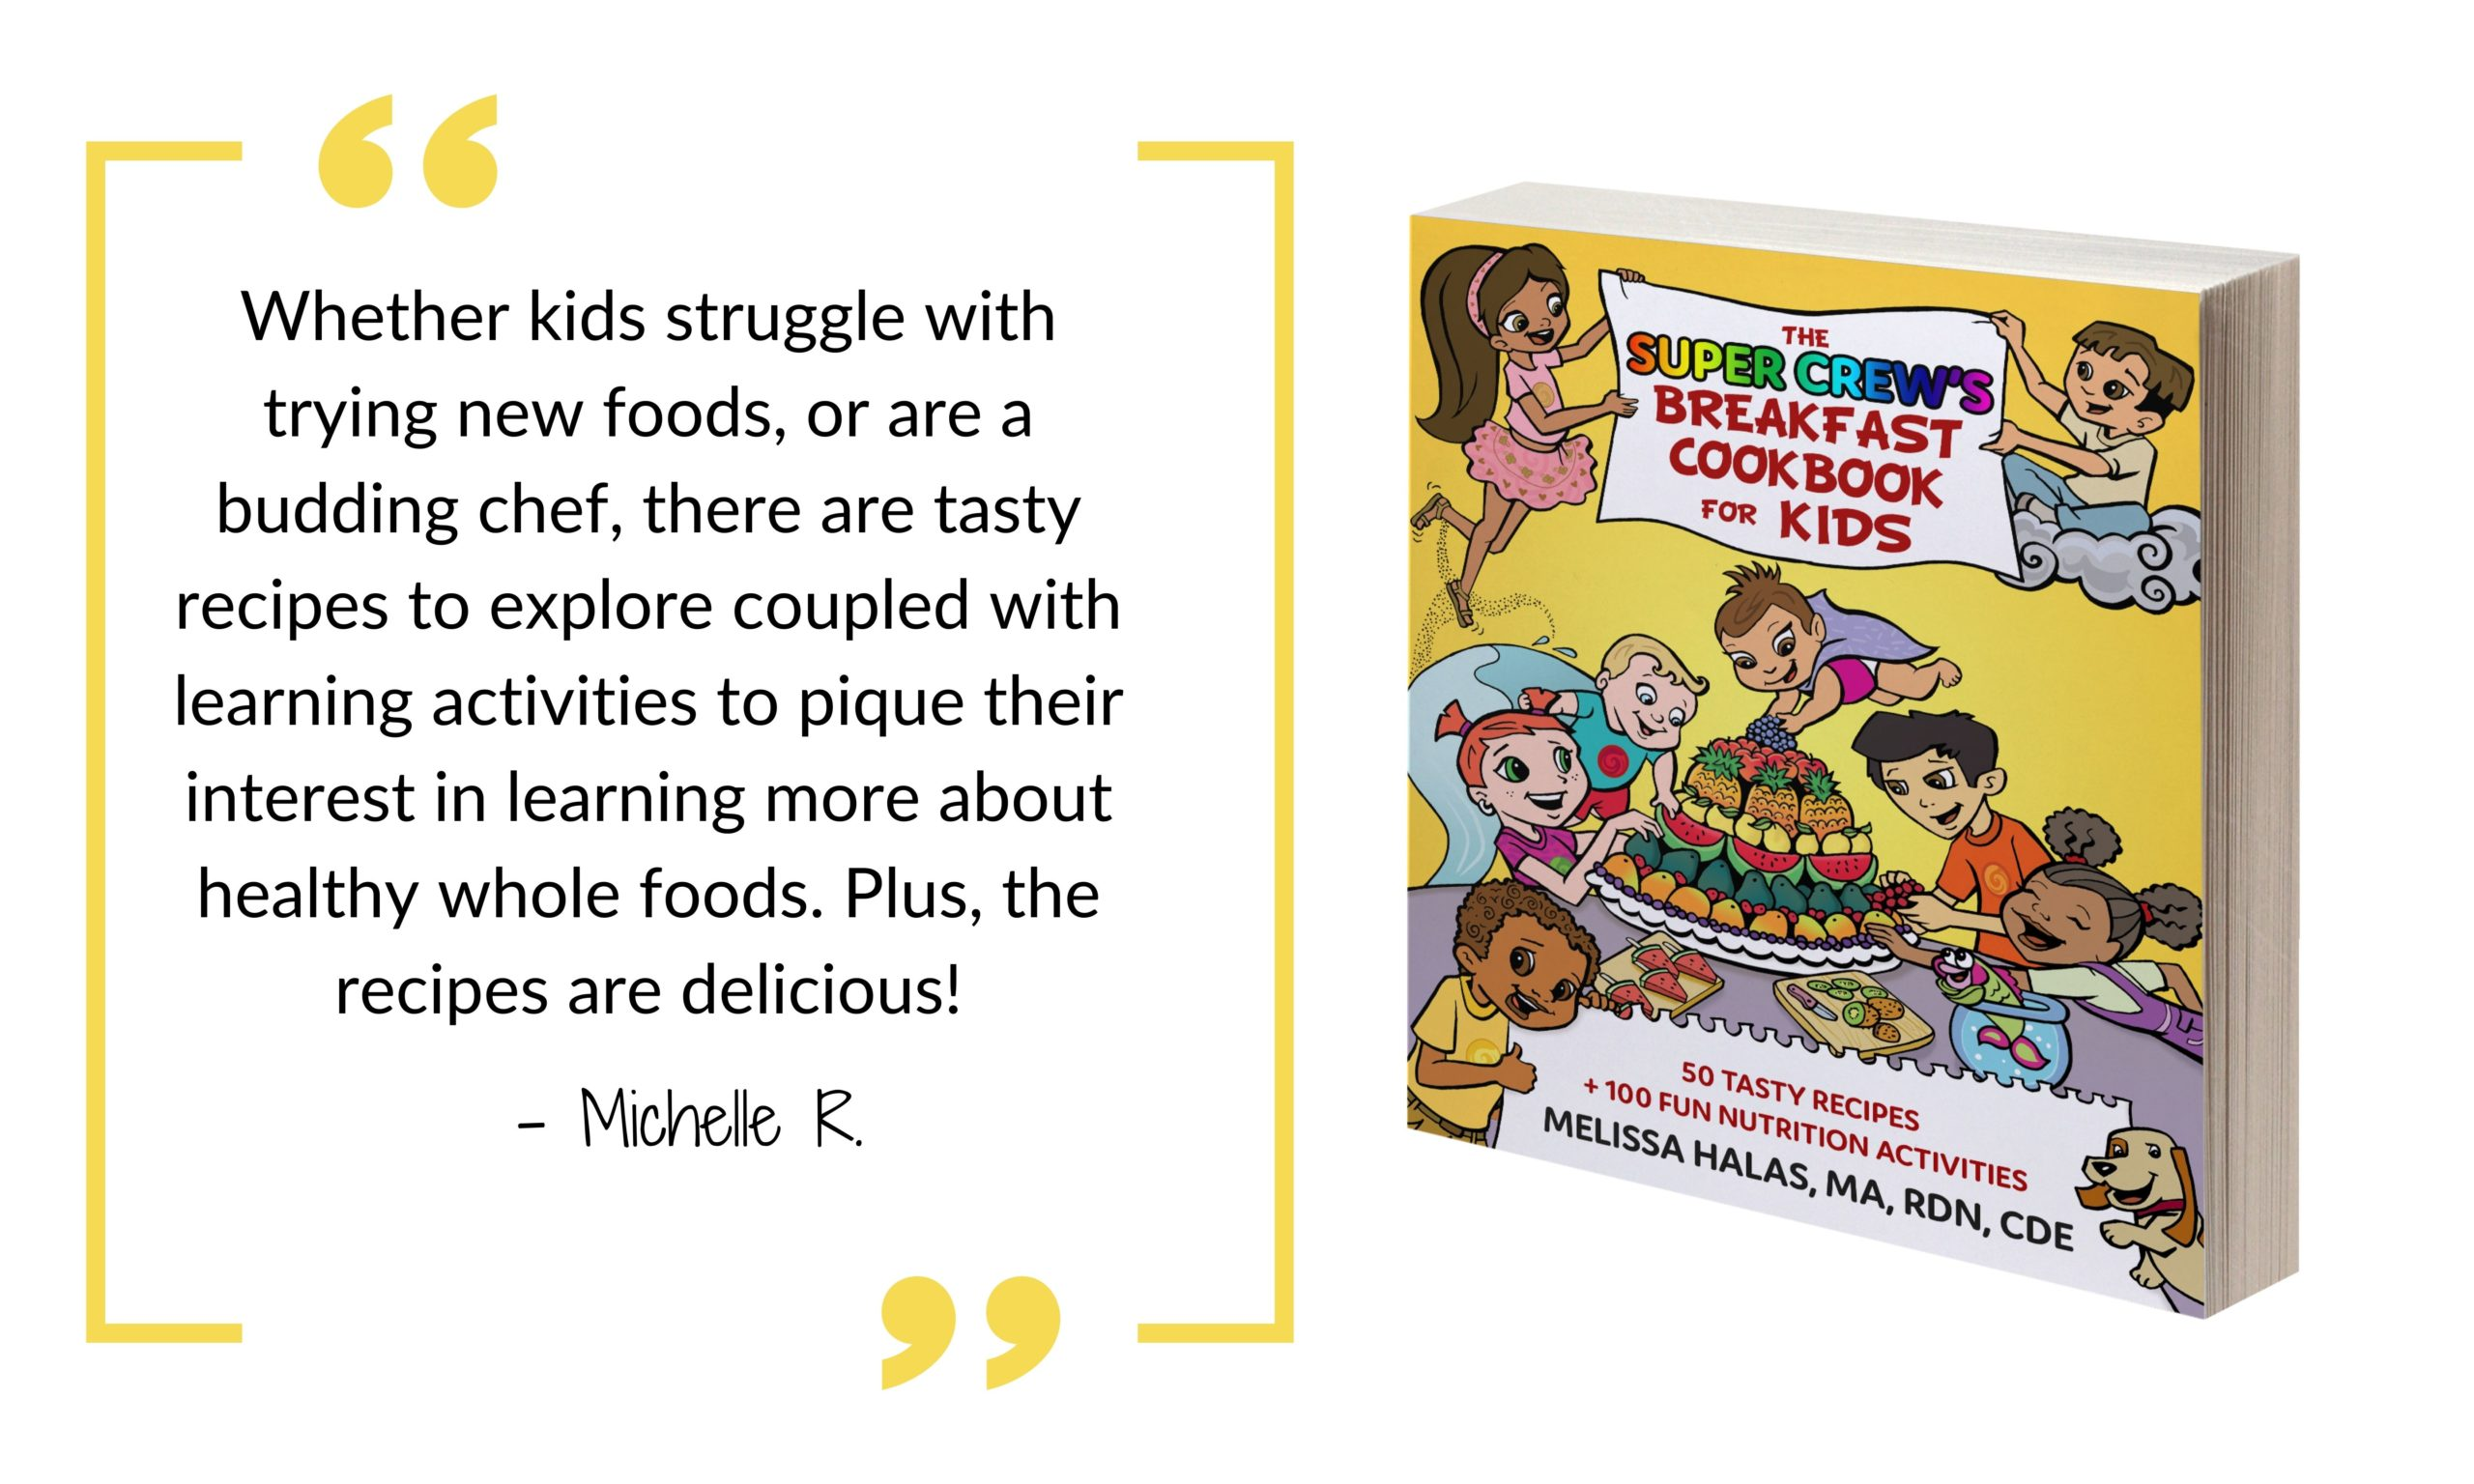 Nutrition activity and cookbook for kids with the Super Crew